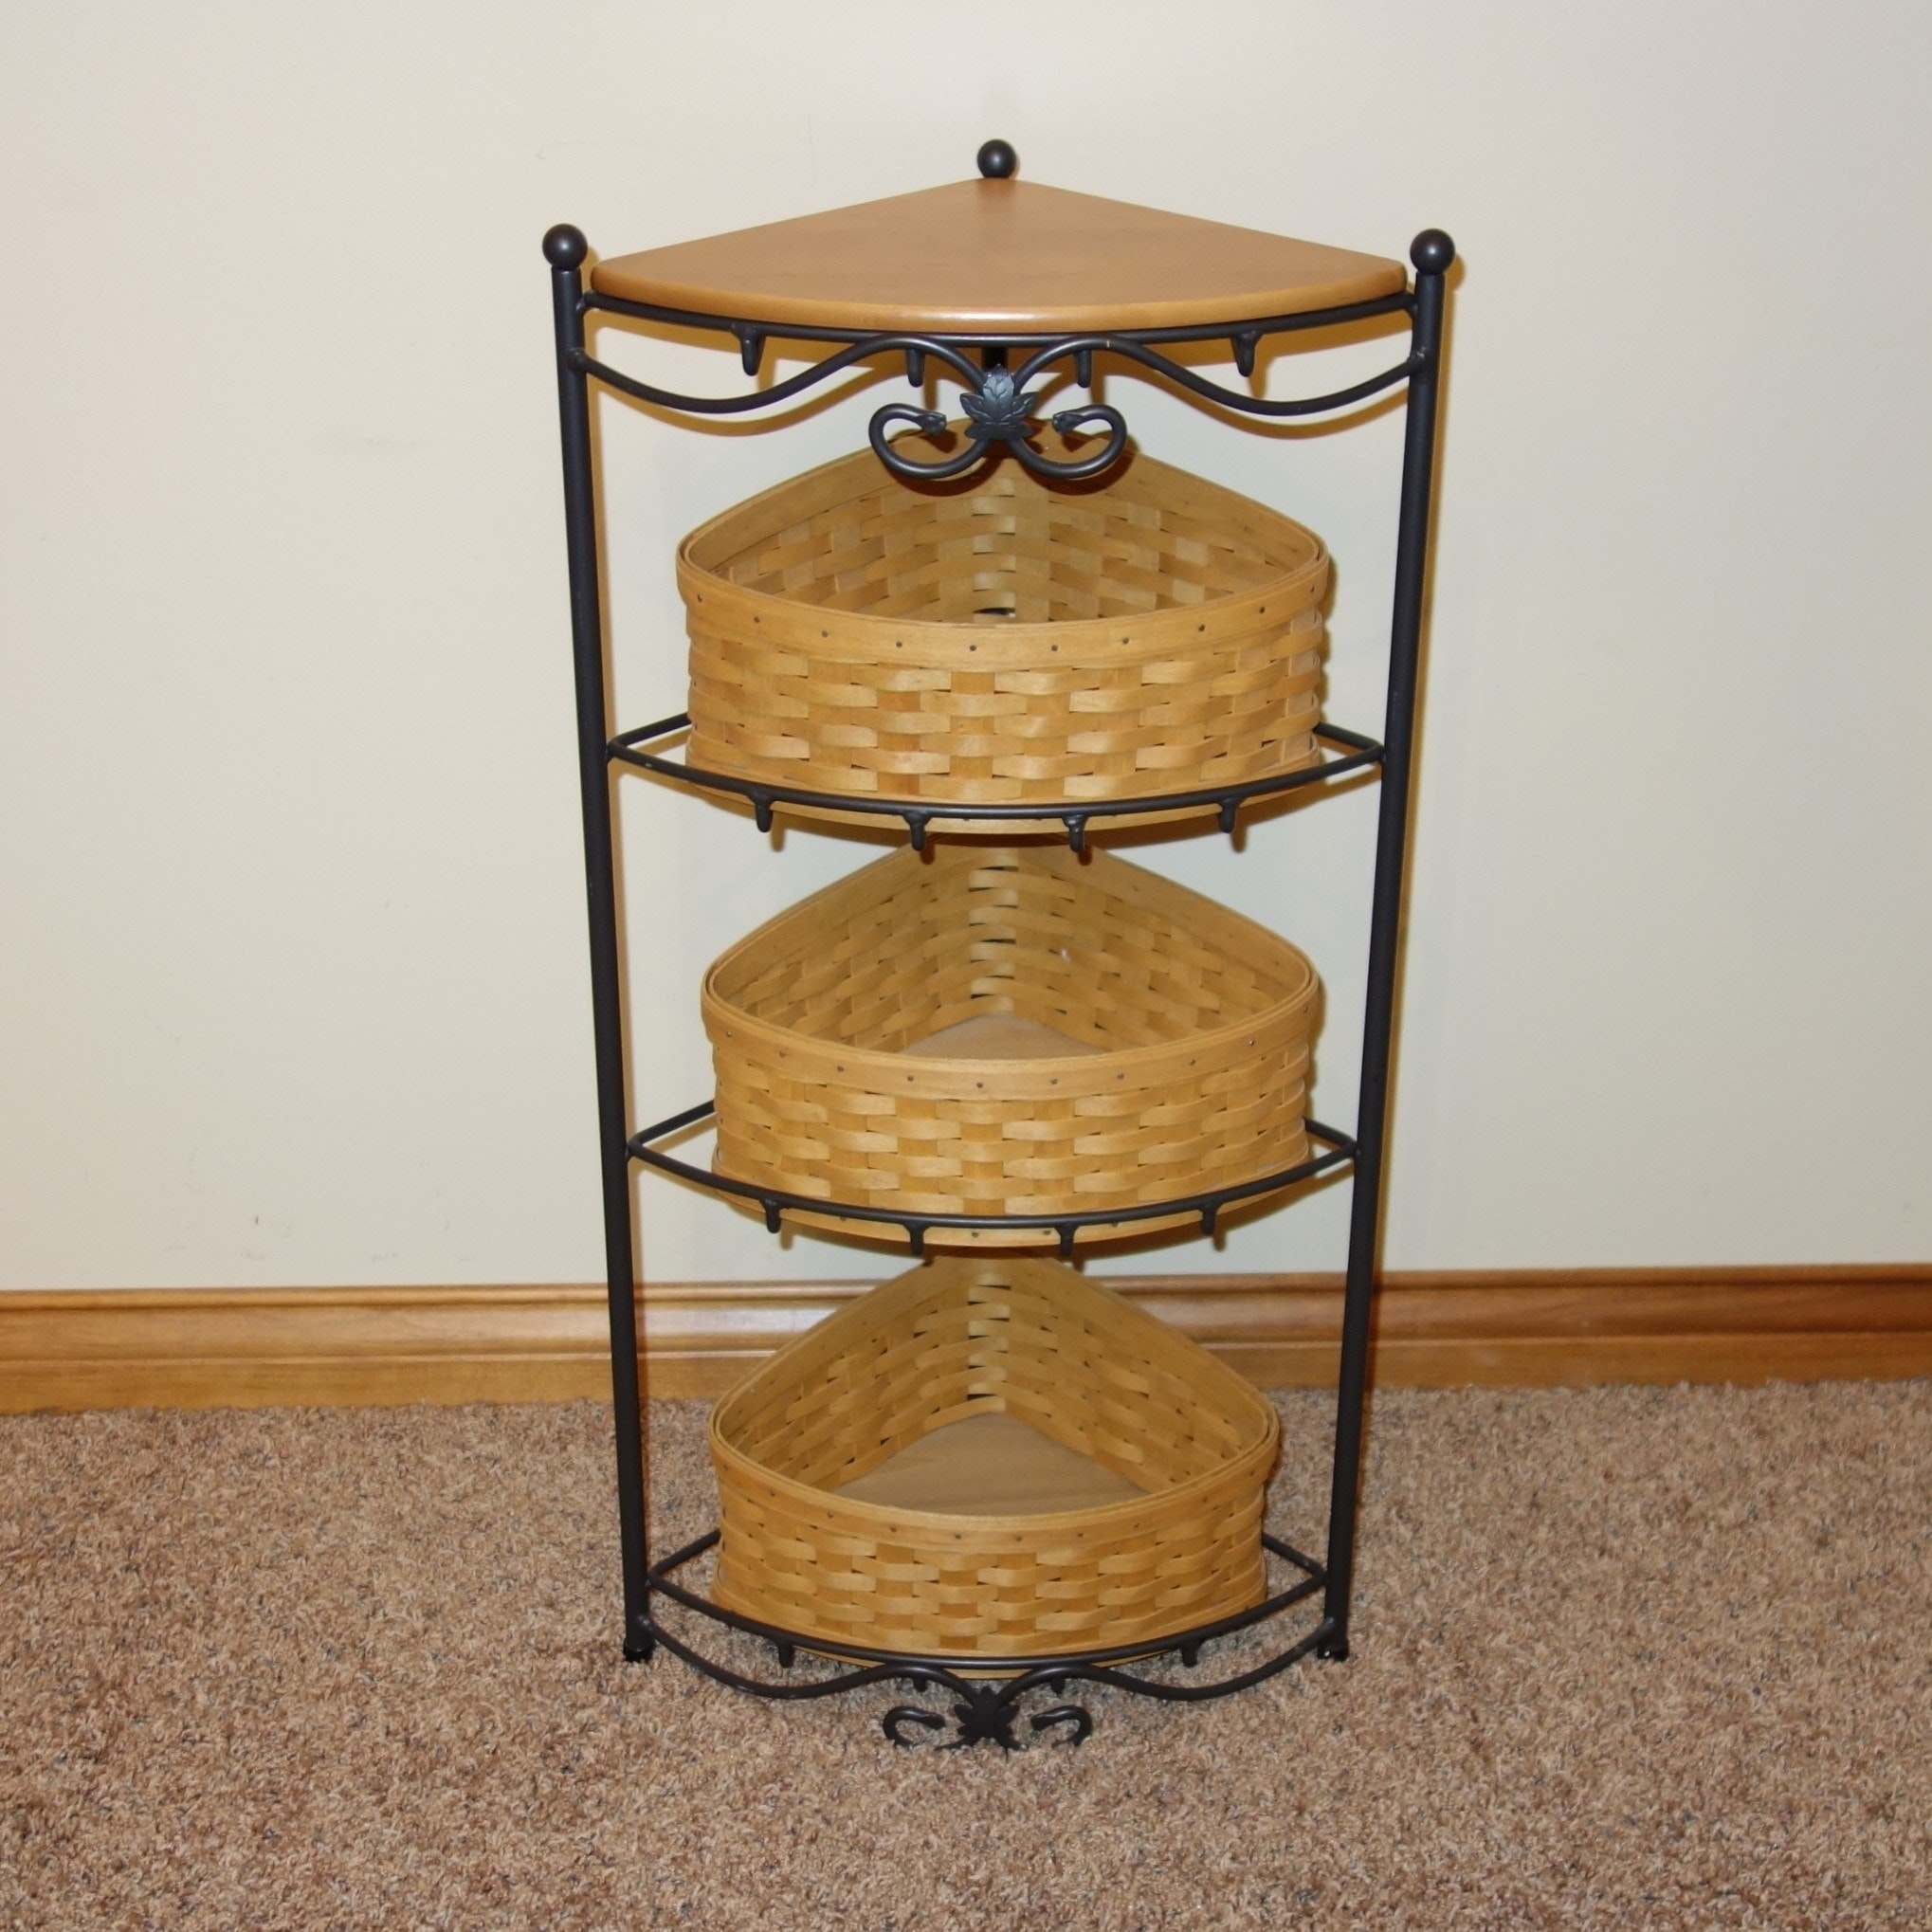 2002 Longaberger Corner Stand Shelf